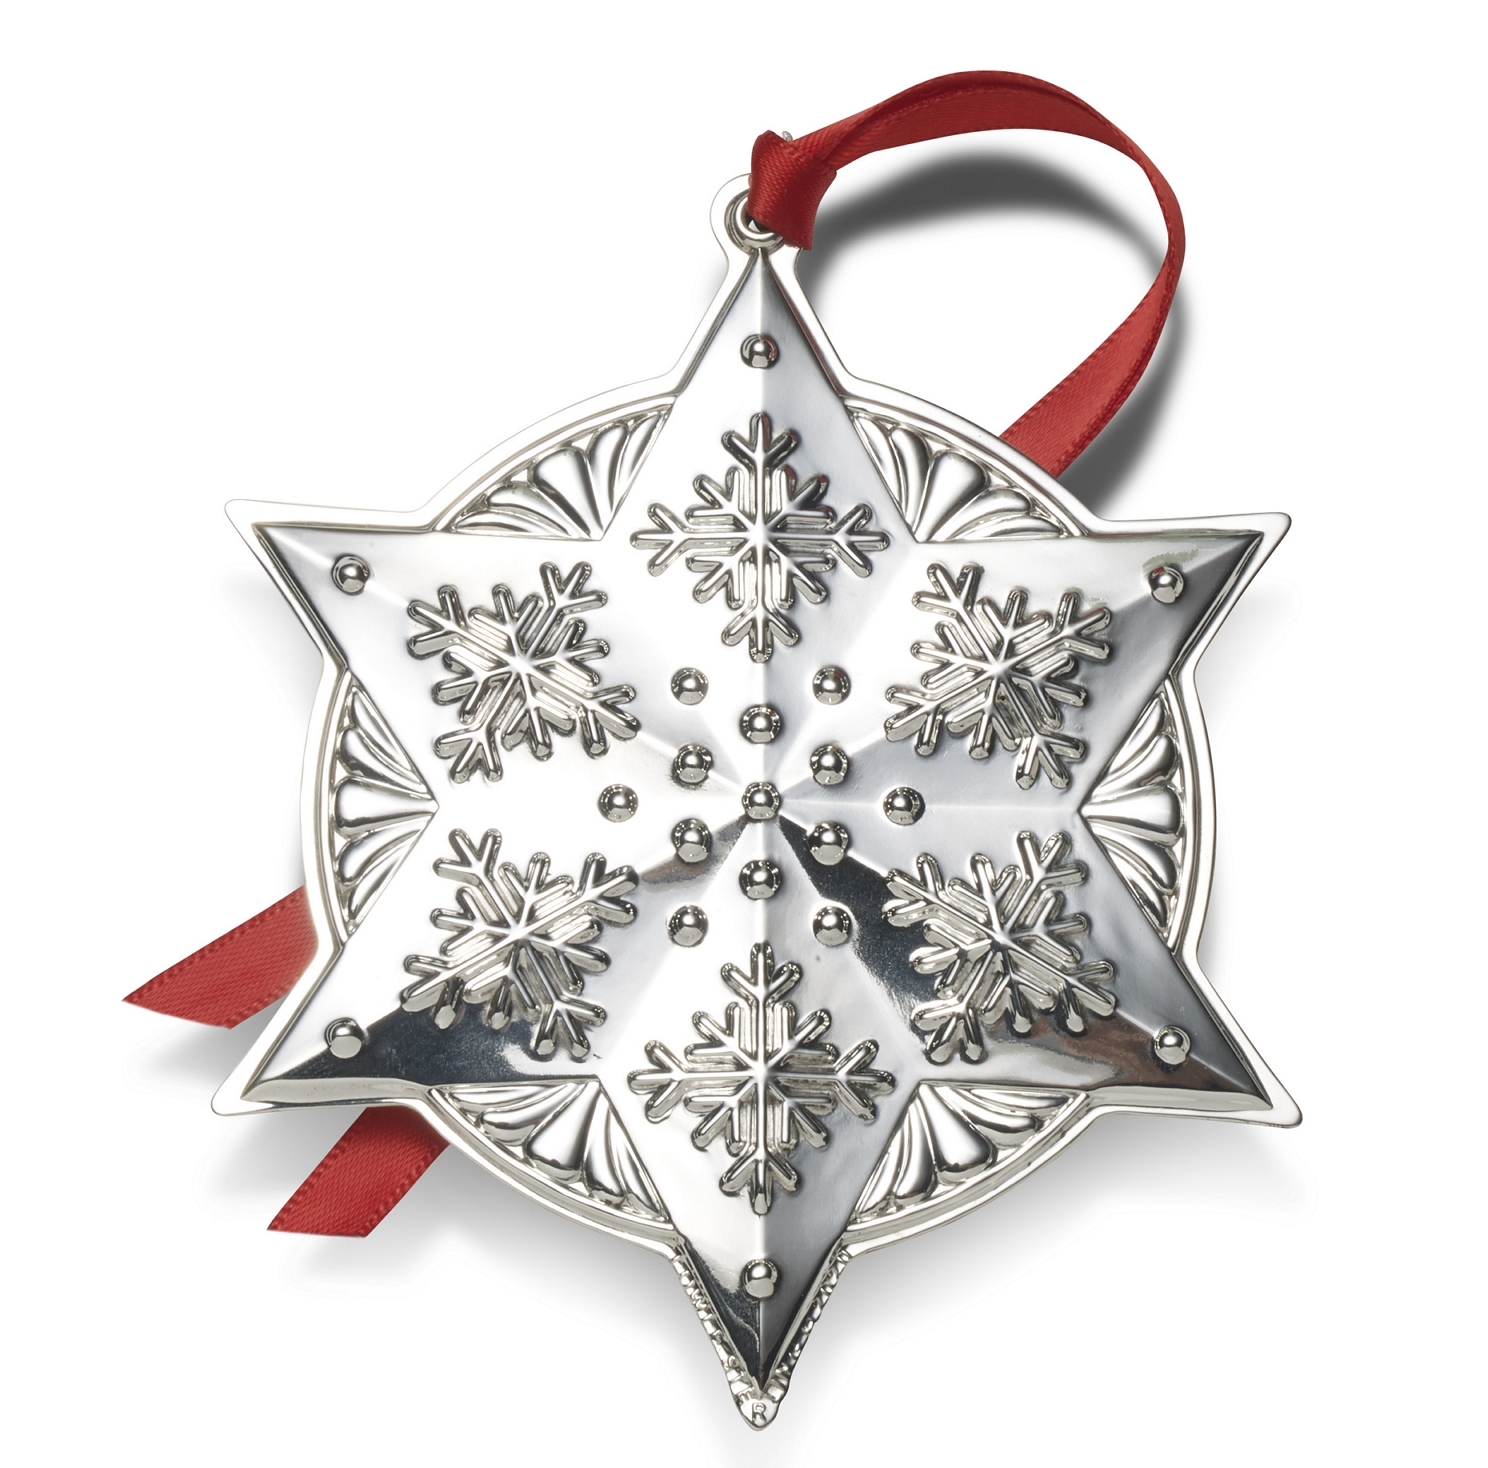 #93746 - Ornaments by Towle 2020 STAR, 24th Edition